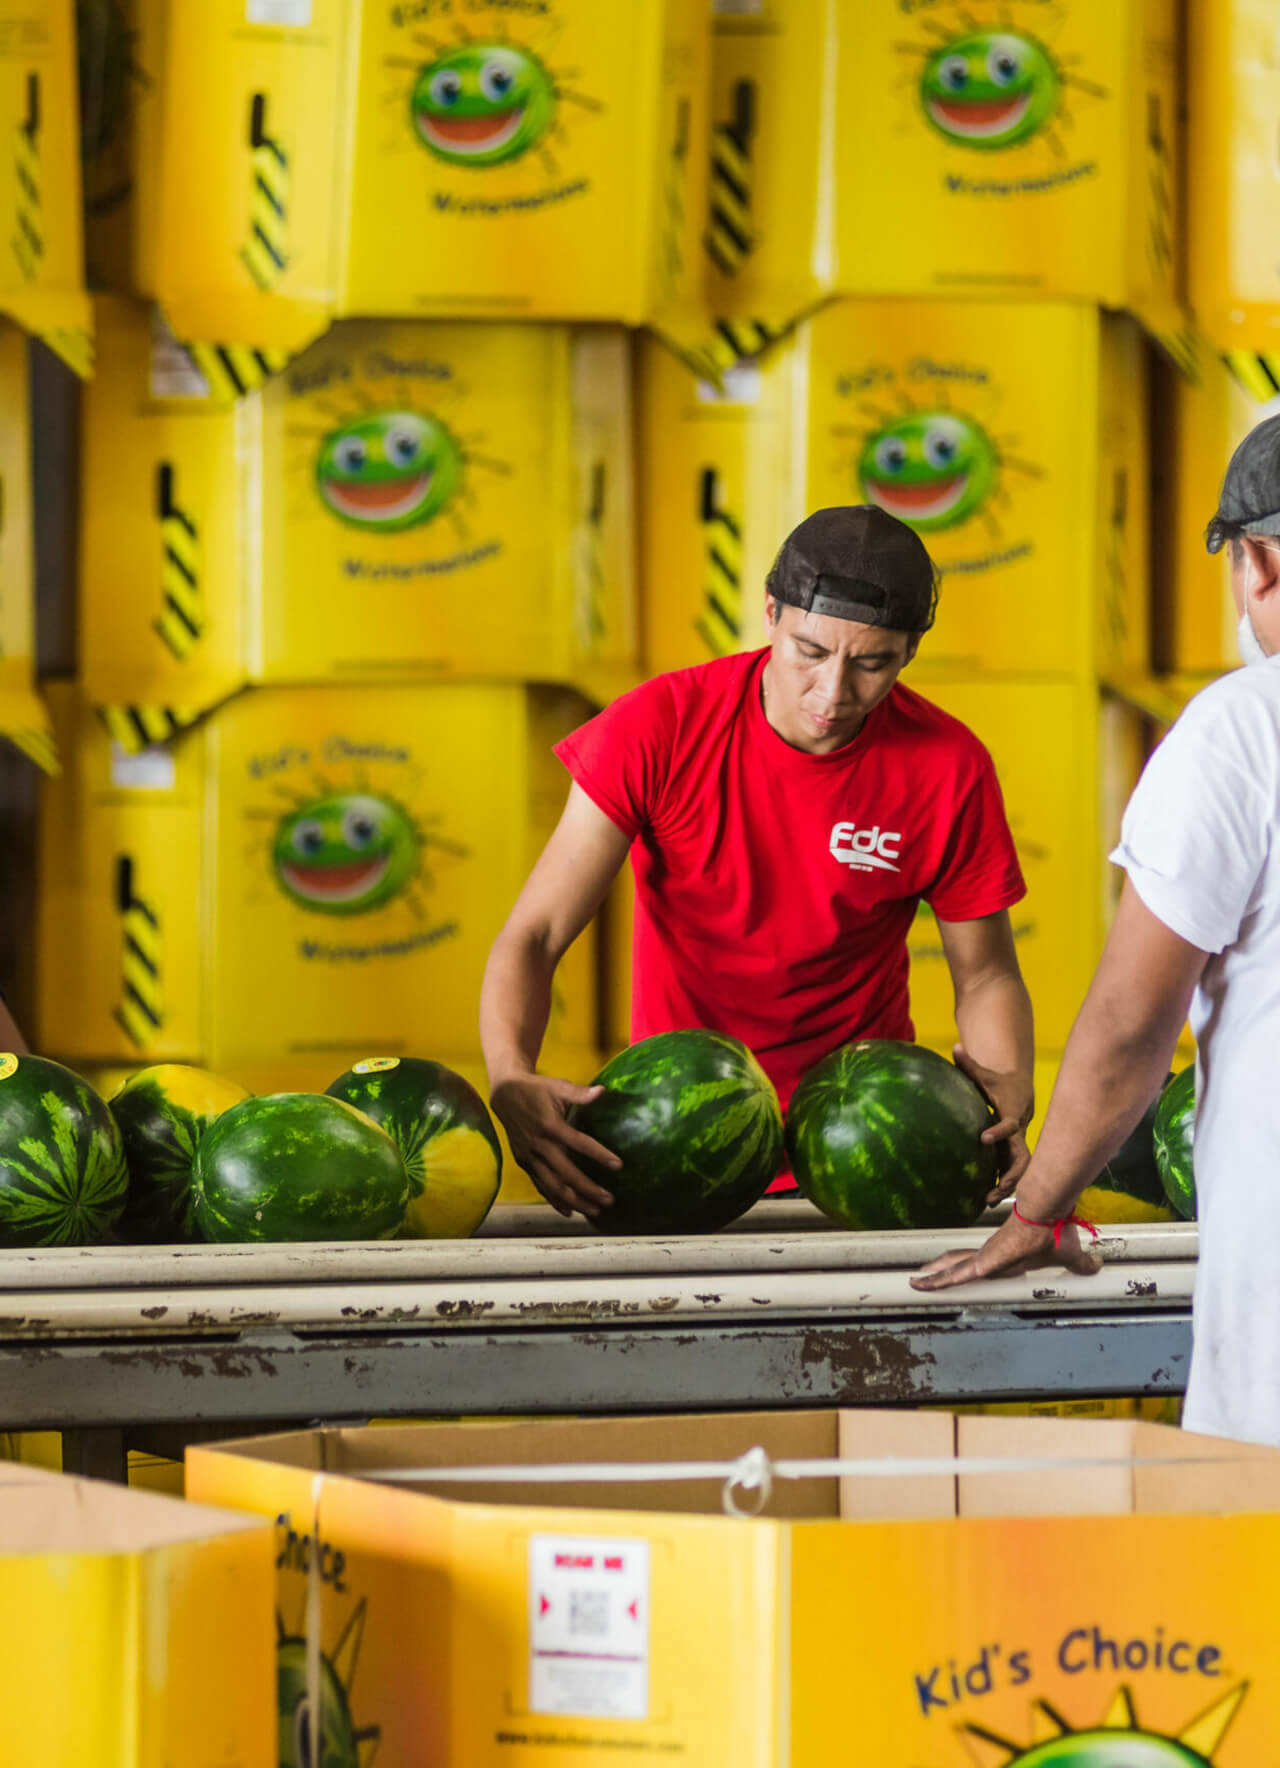 Packing Kids Choice Watermelons